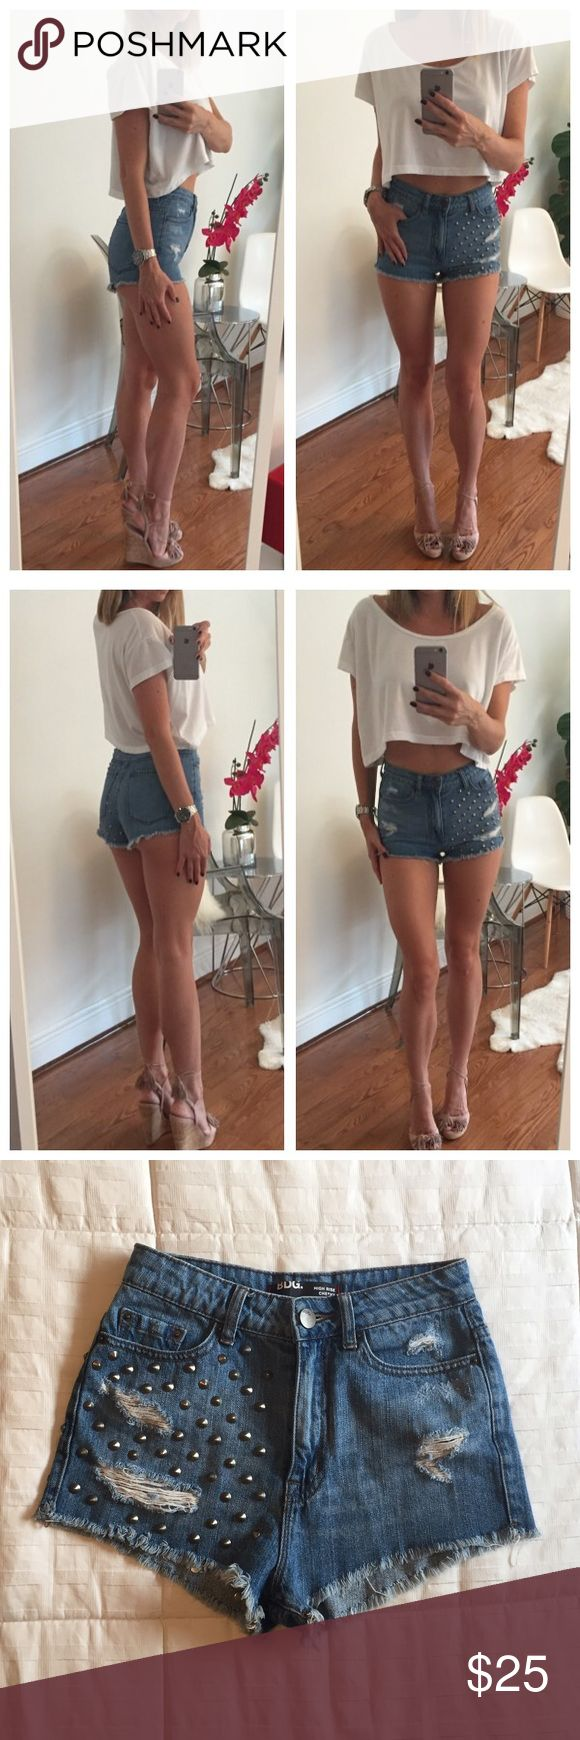 BDG High Waisted Jean Shorts These super cute BDG high rise cheeky studded jean shorts from Urban Outfitters are a size 25 and fit as that. The fit on these are amazing! A must have for summer! Urban Outfitters Shorts Jean Shorts